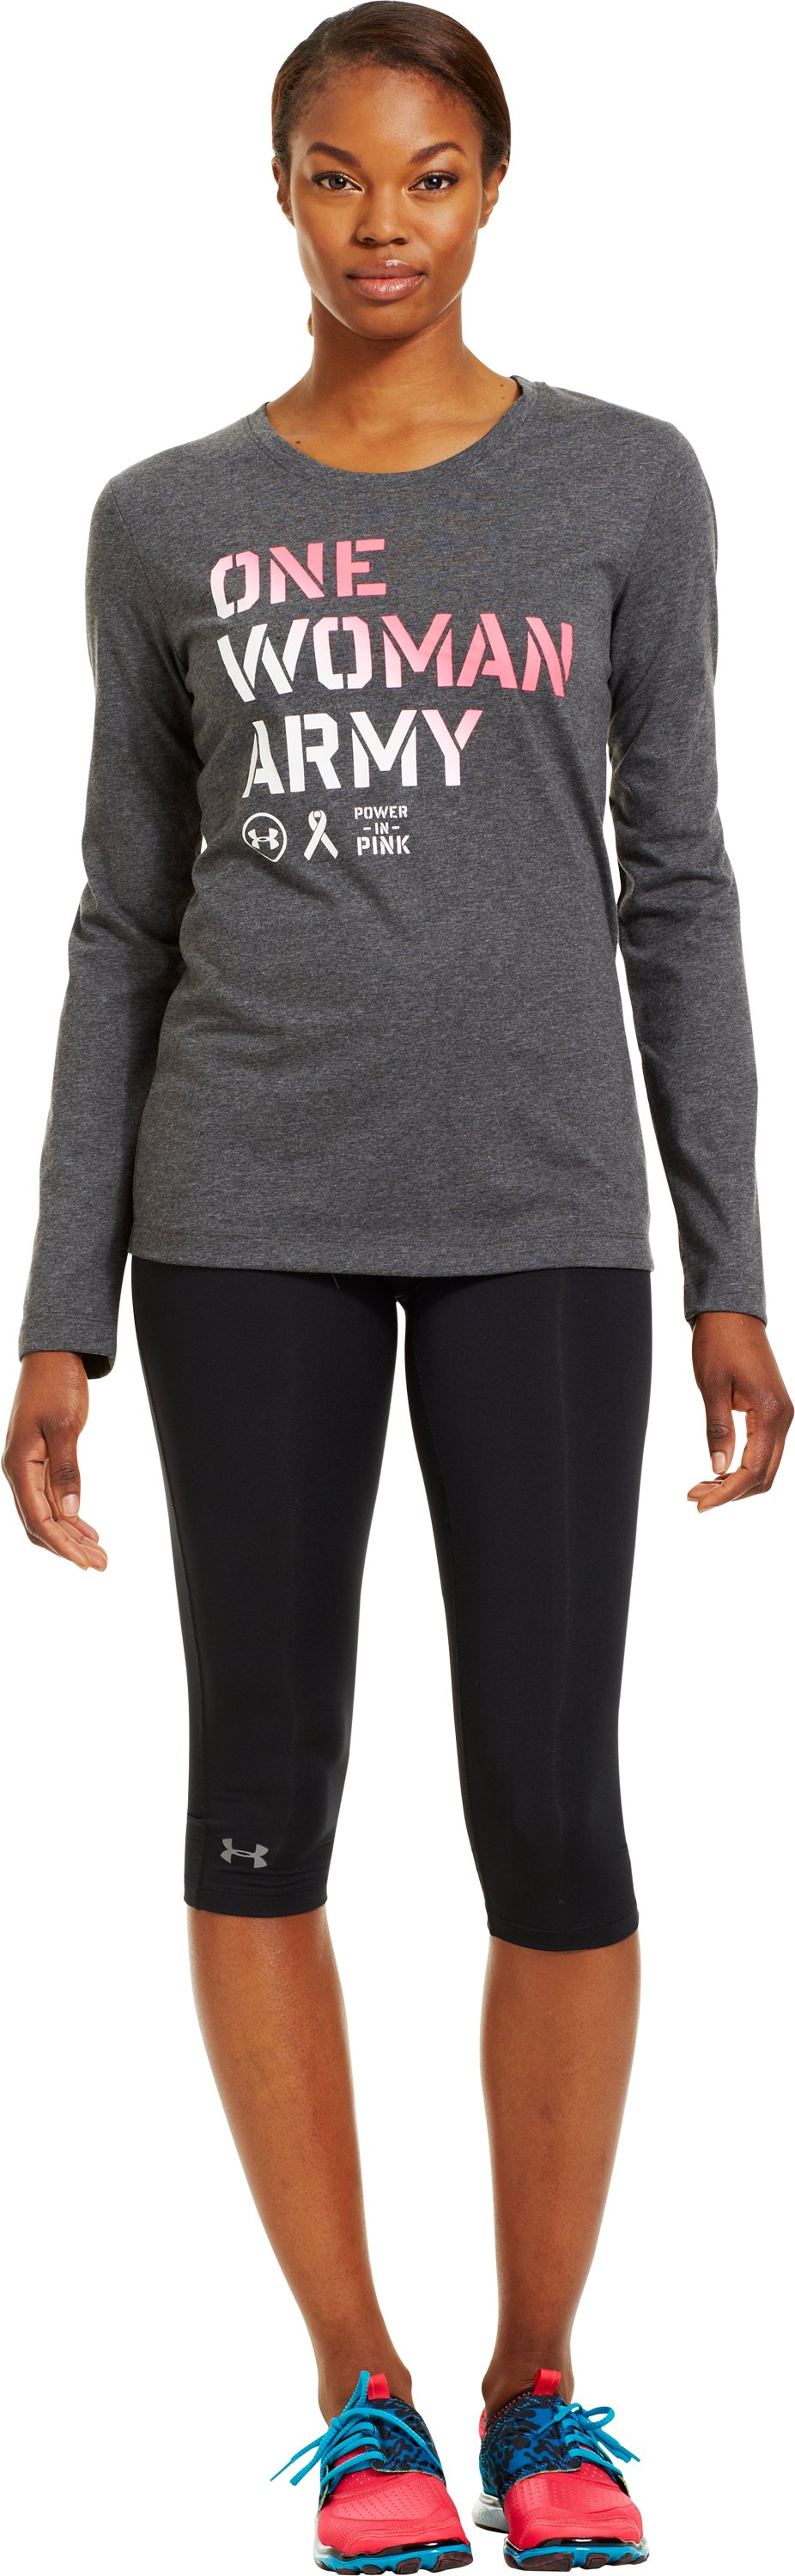 Women's UA PIP® One Woman Army Long Sleeve, Carbon Heather